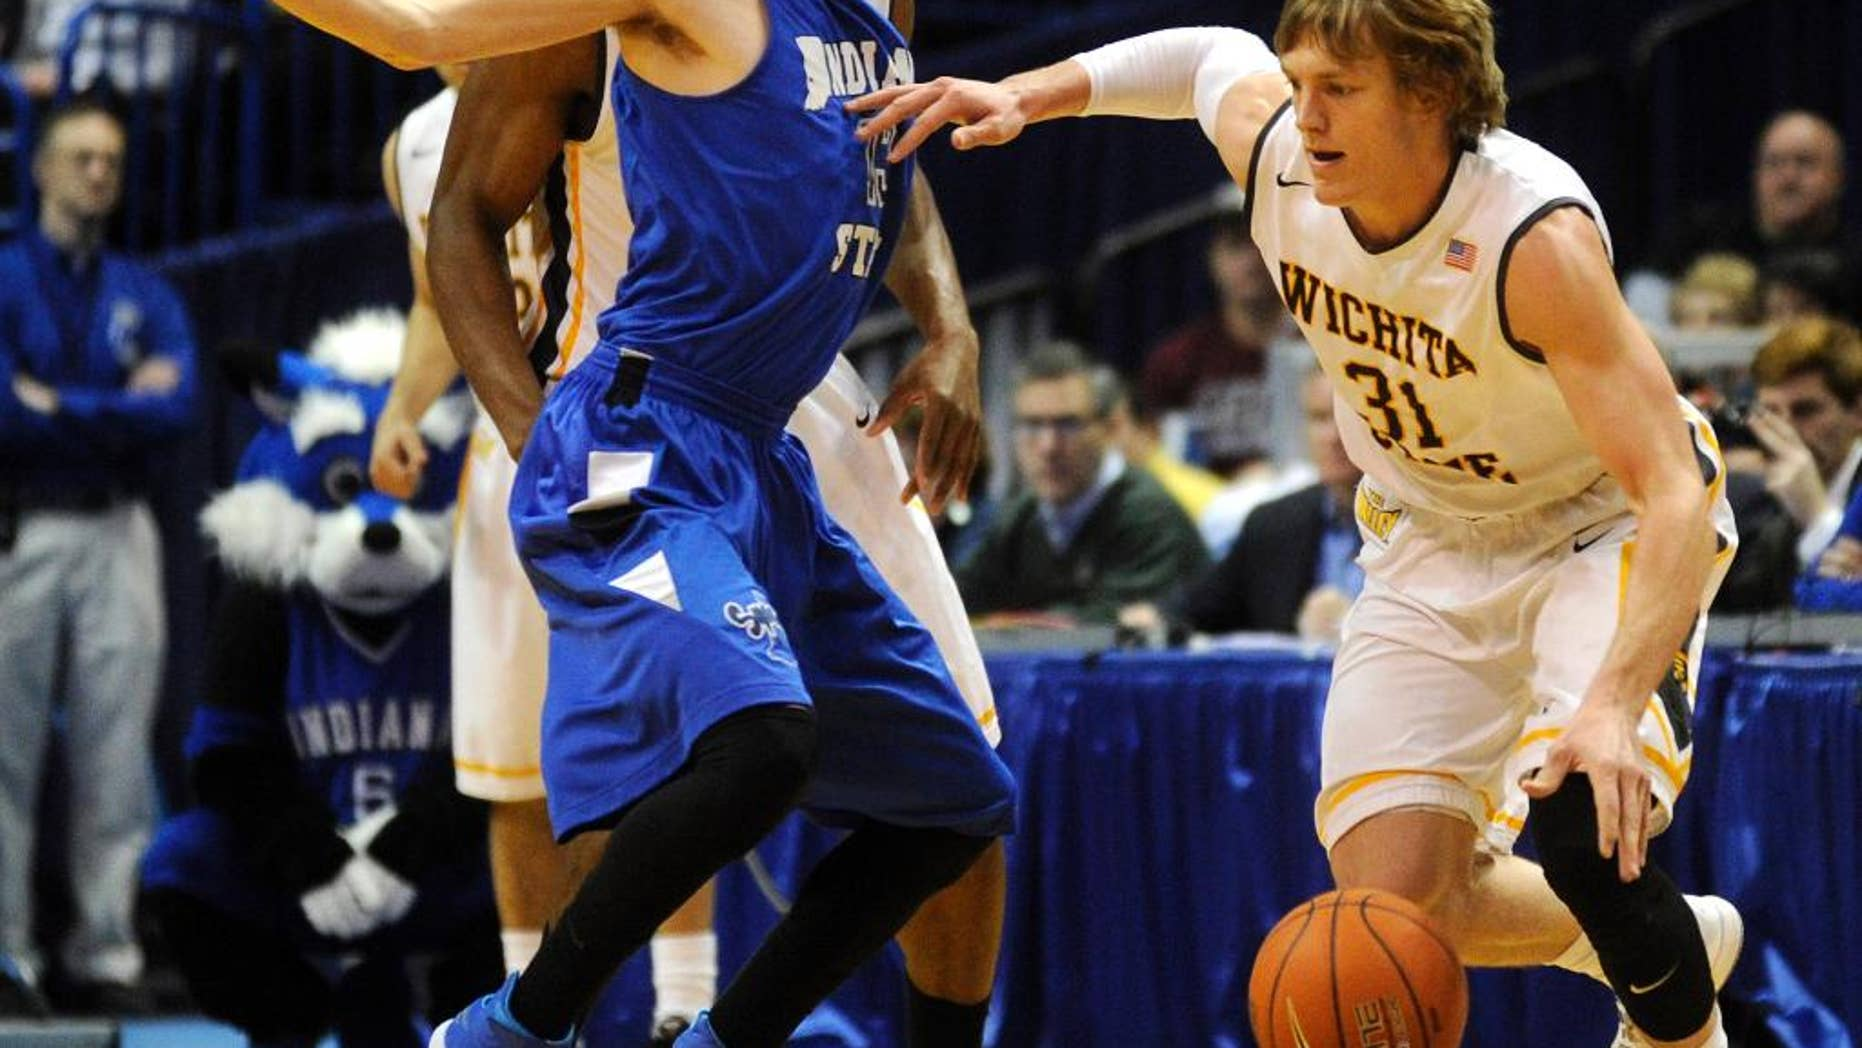 Wichita State's Ron Baker (31) drives by Indiana State's Jake Odum, left, in the first half of an NCAA college basketball game in the championship of the Missouri Valley Conference men's tournament on Sunday, March 9, 2014, in St. Louis. (AP Photo/Bill Boyce)